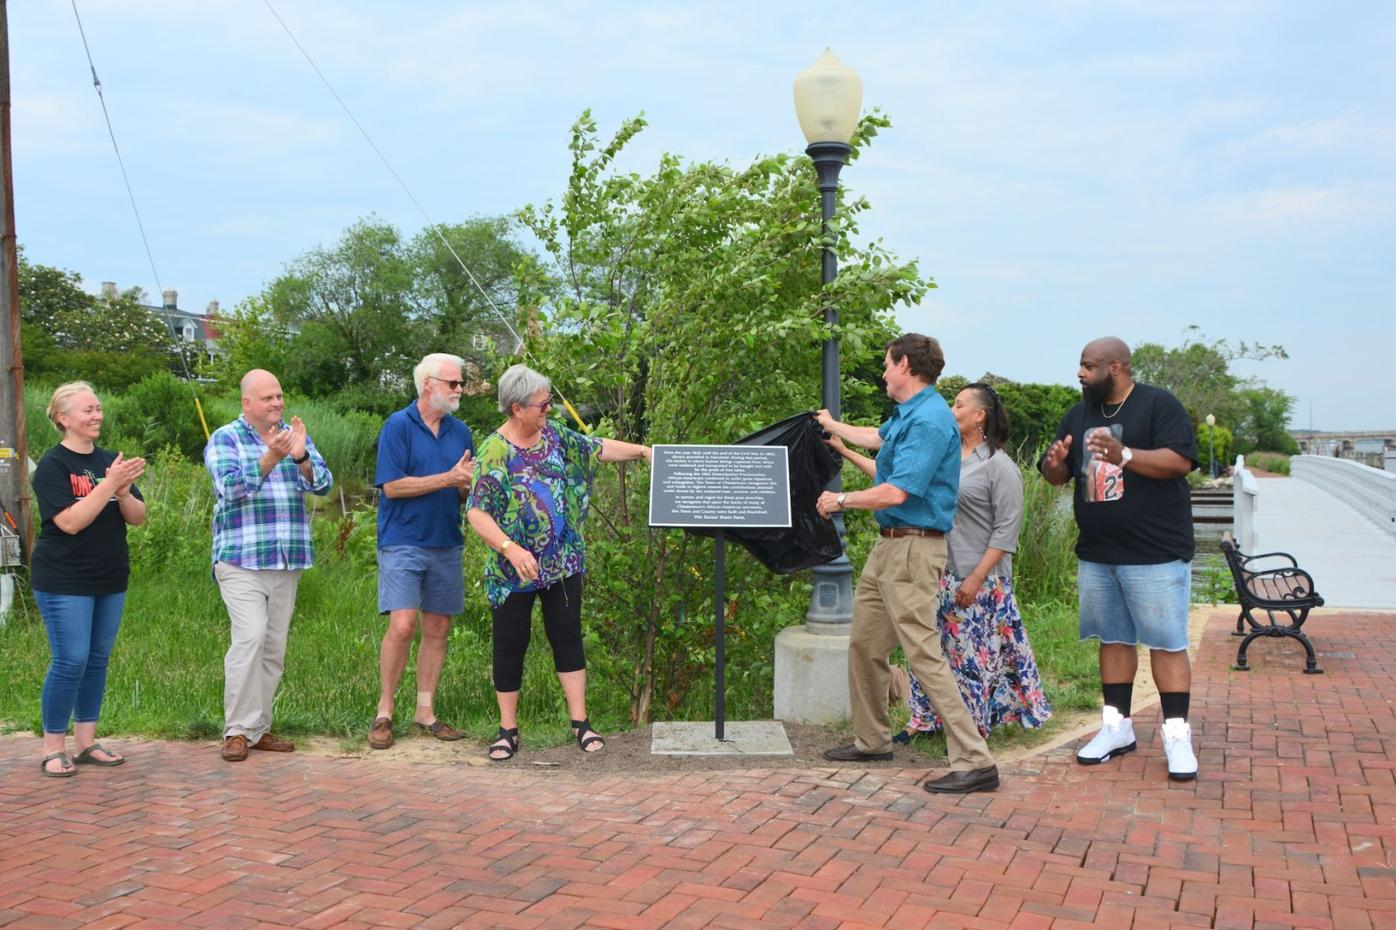 Chestertown unveils historic signage on Juneteenth